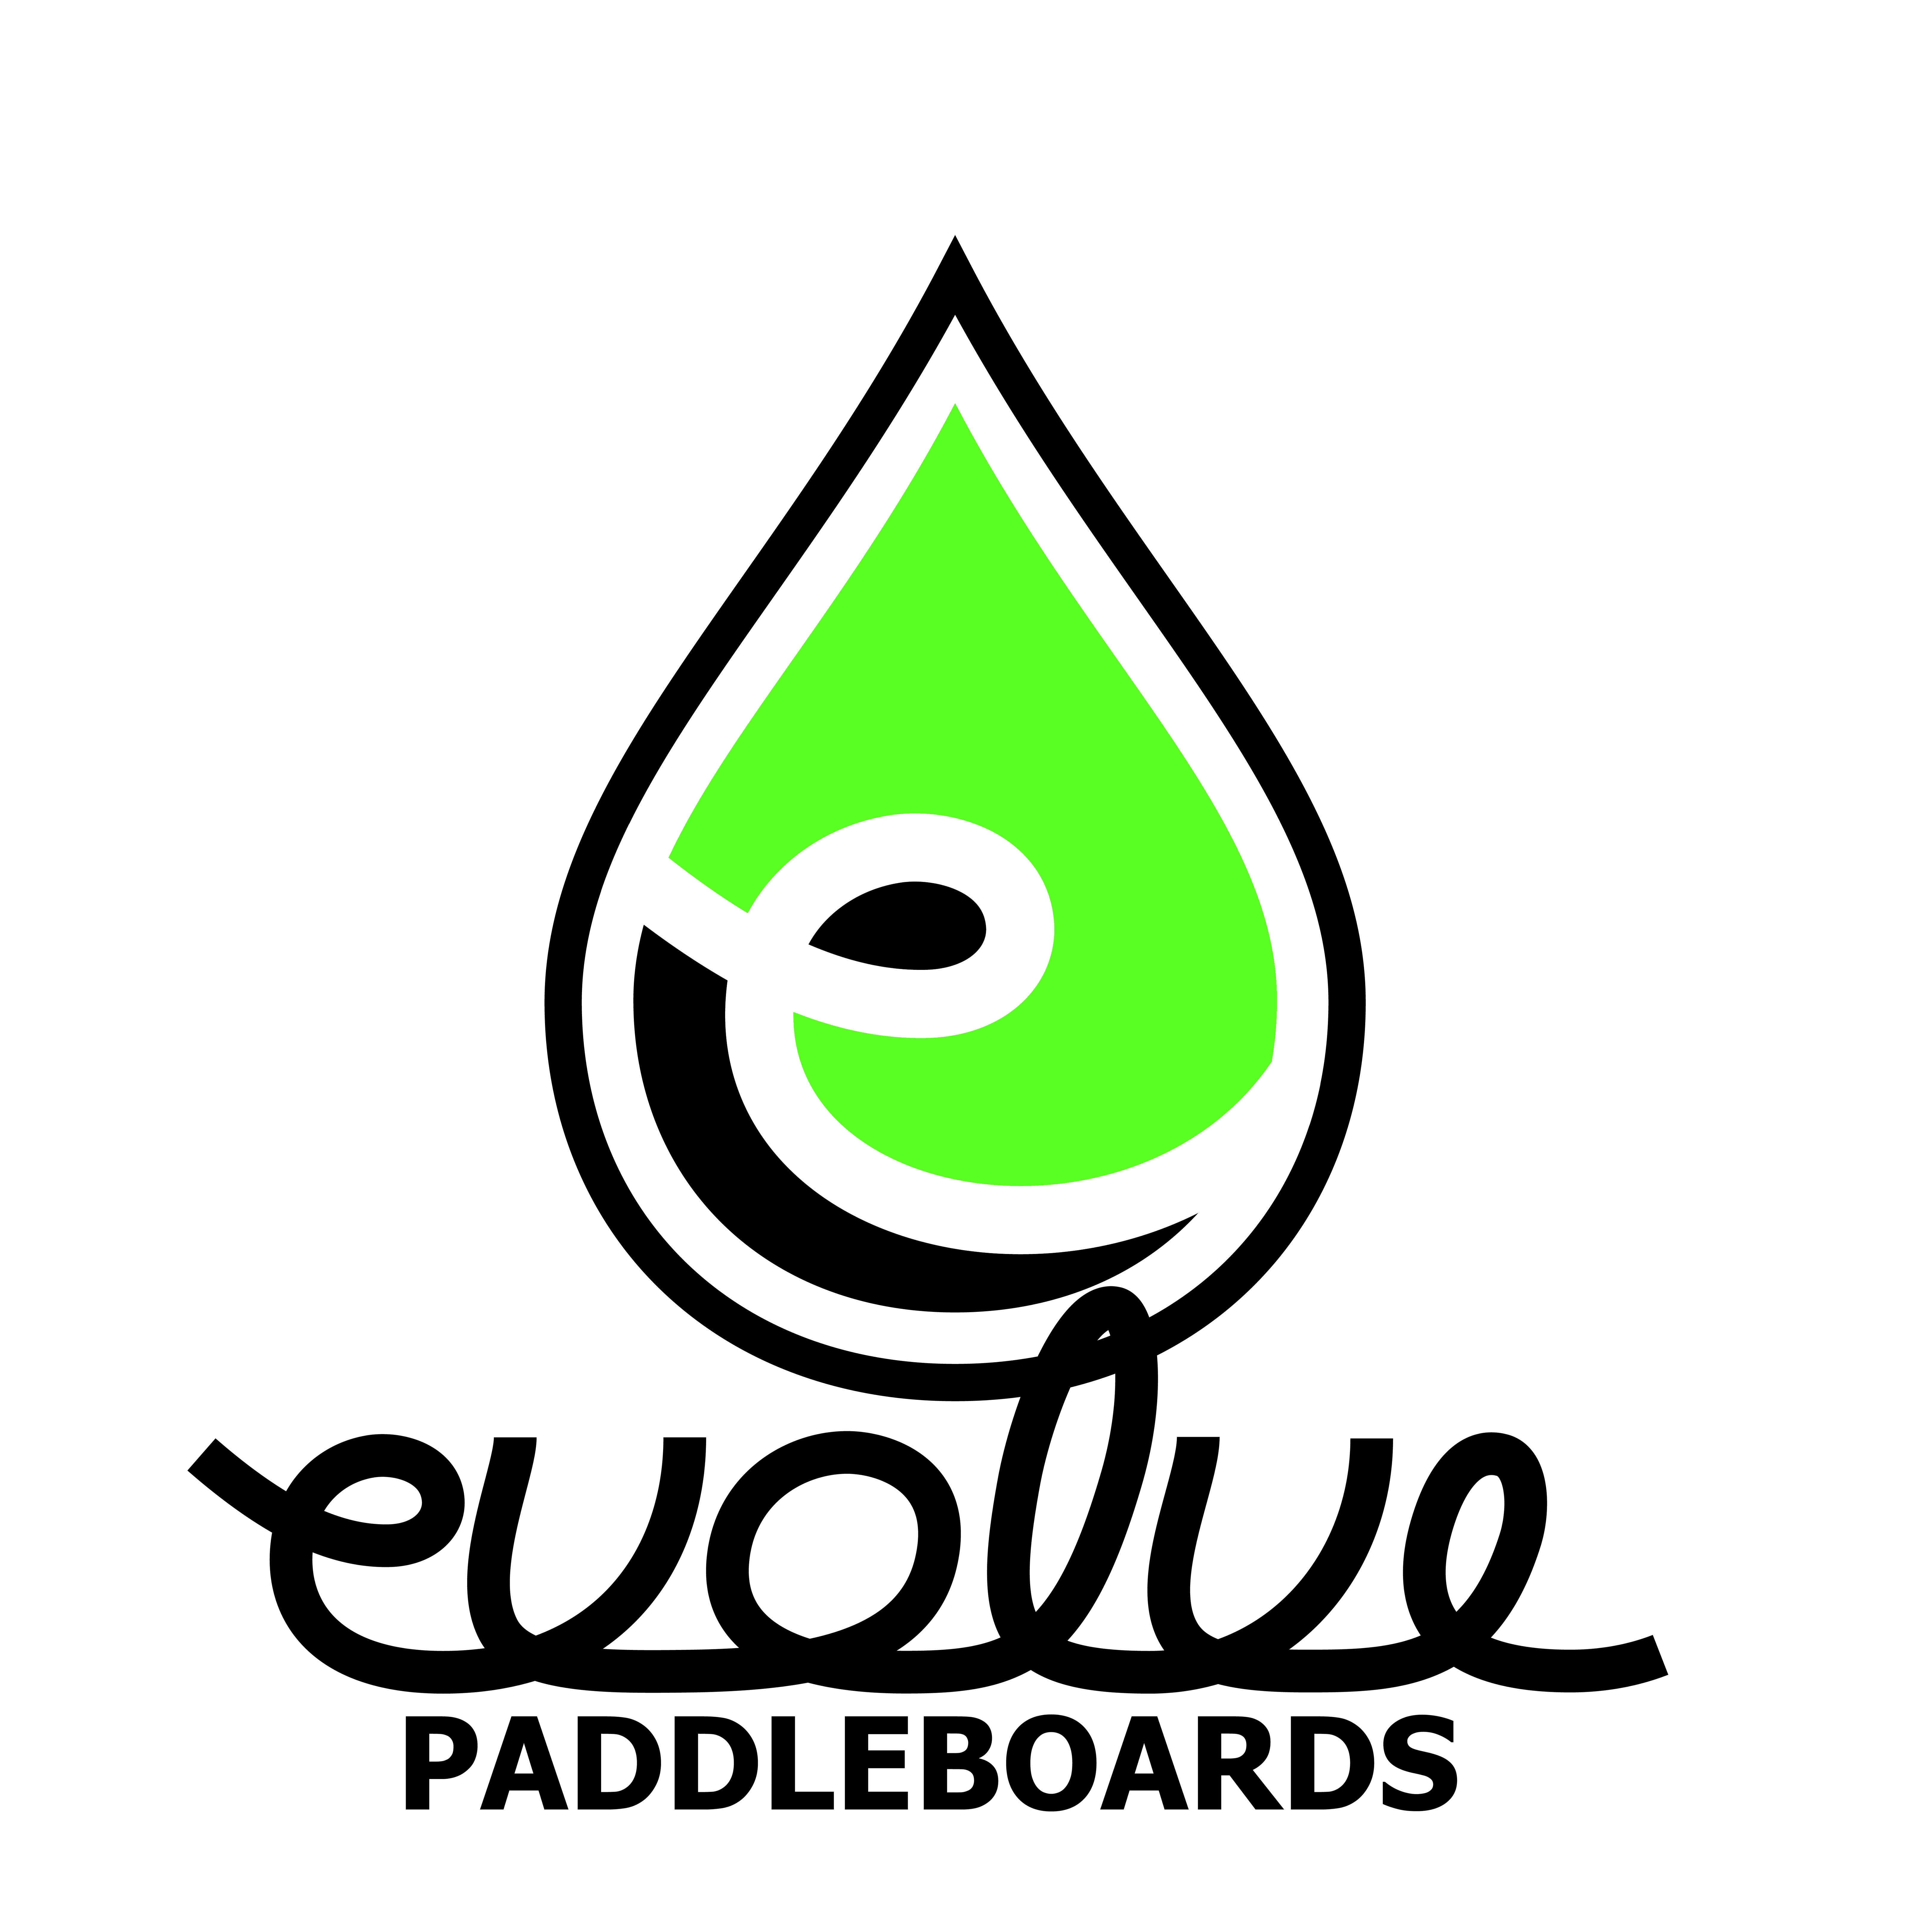 Evolve-paddleboards-logo